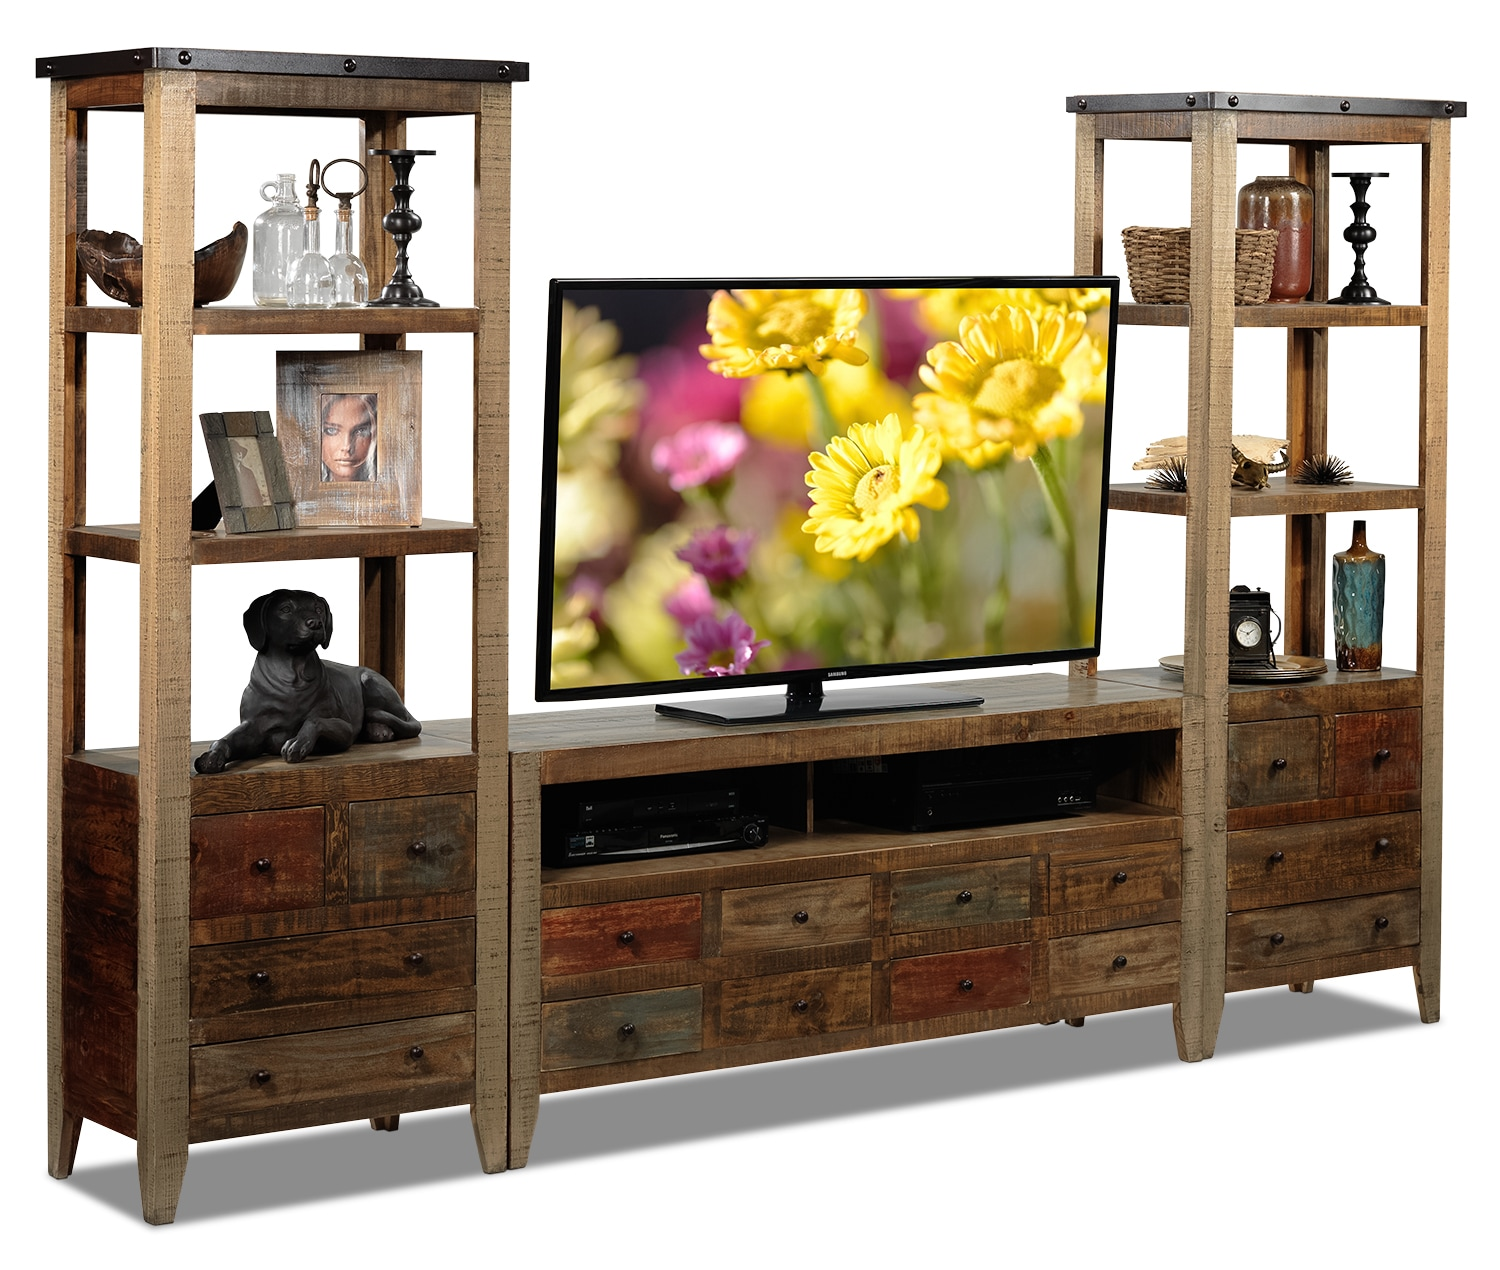 Auckland 3-Piece Entertainment Wall Unit - Rustic Brown